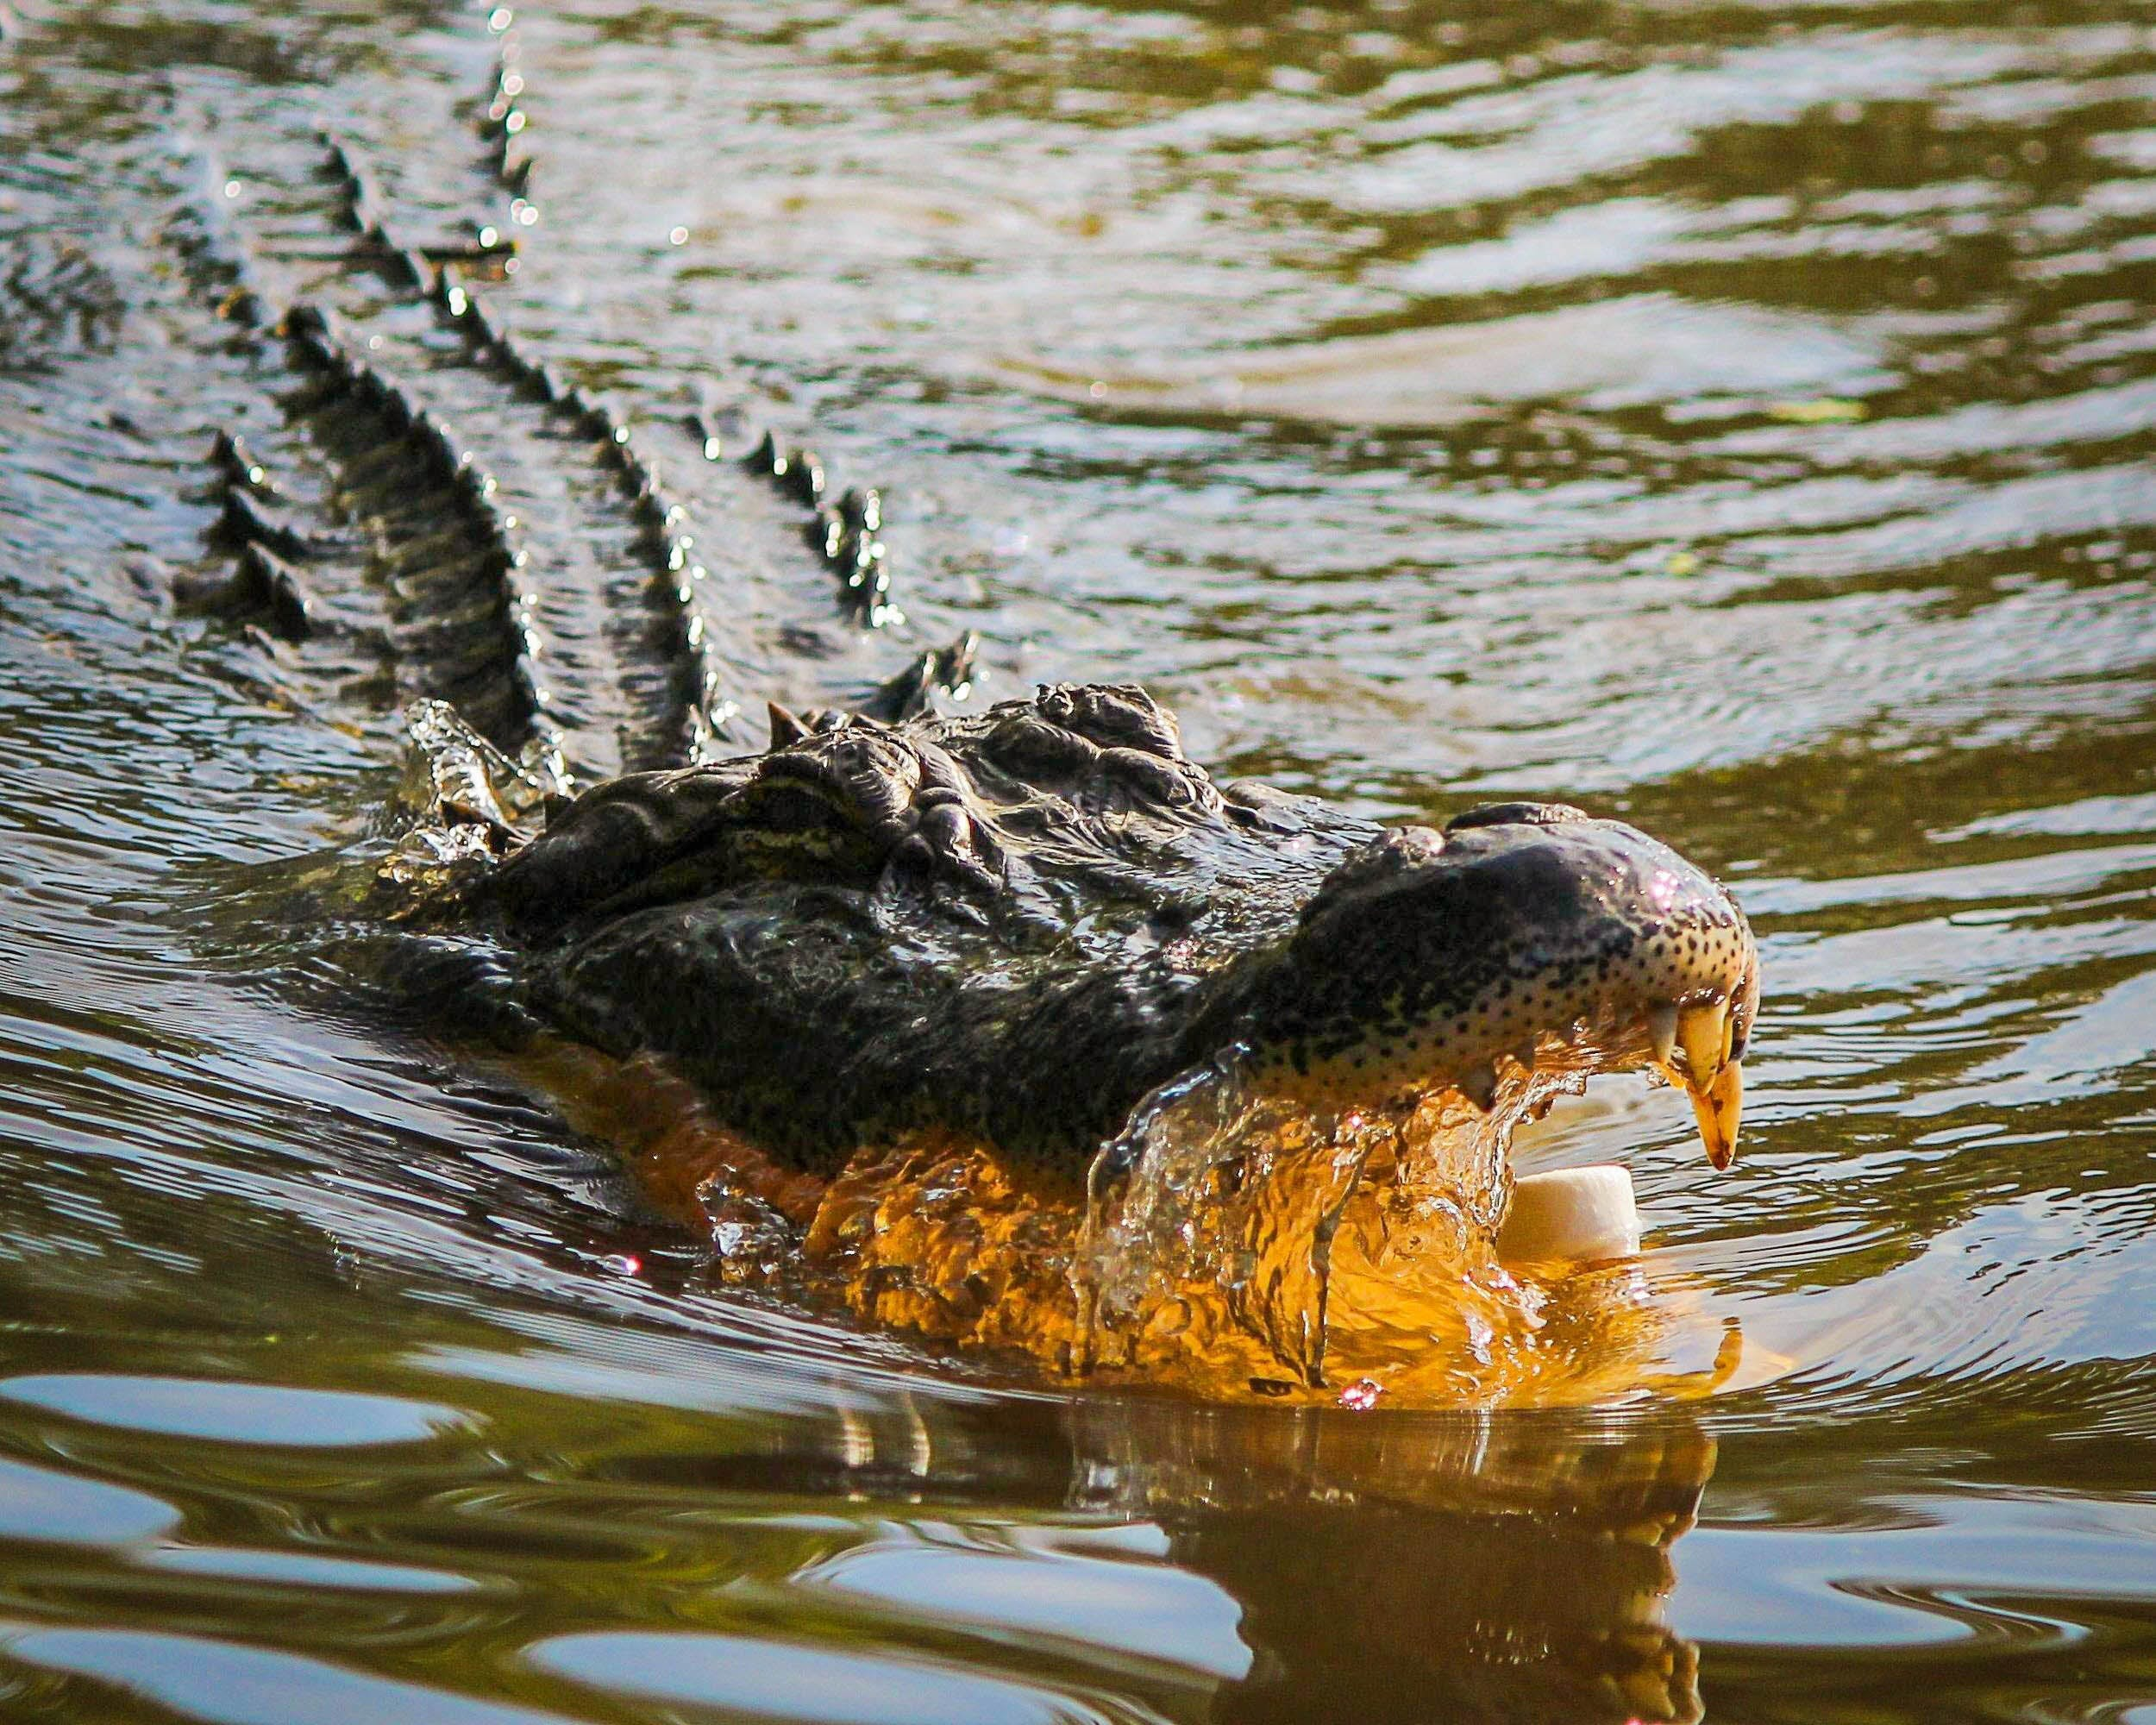 Crocodile on Water Opening Mouth